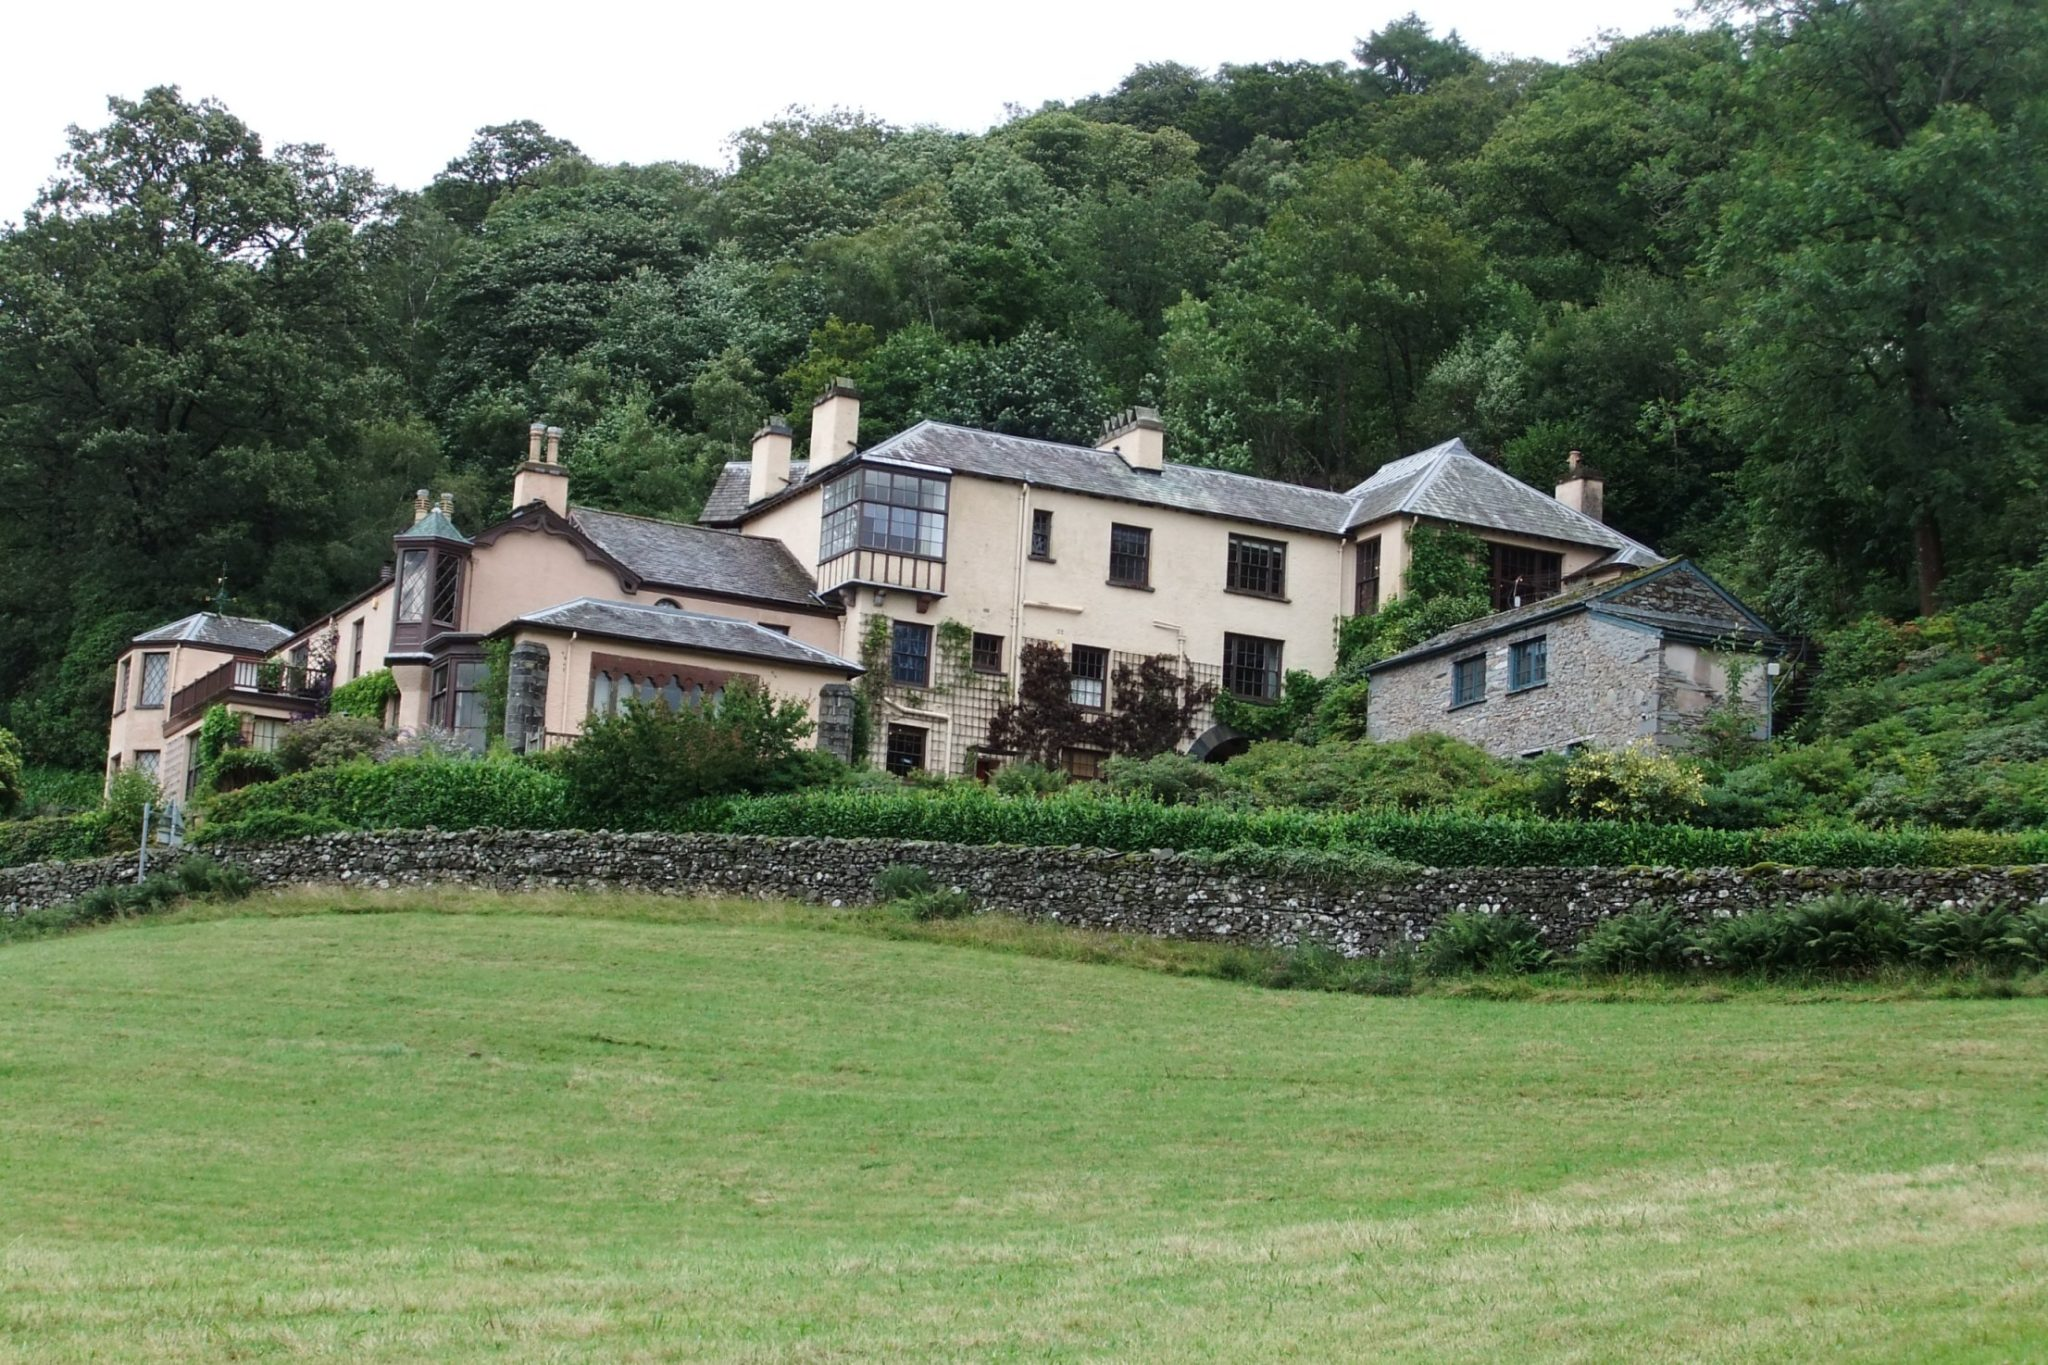 Brantwood – The home of John Ruskin